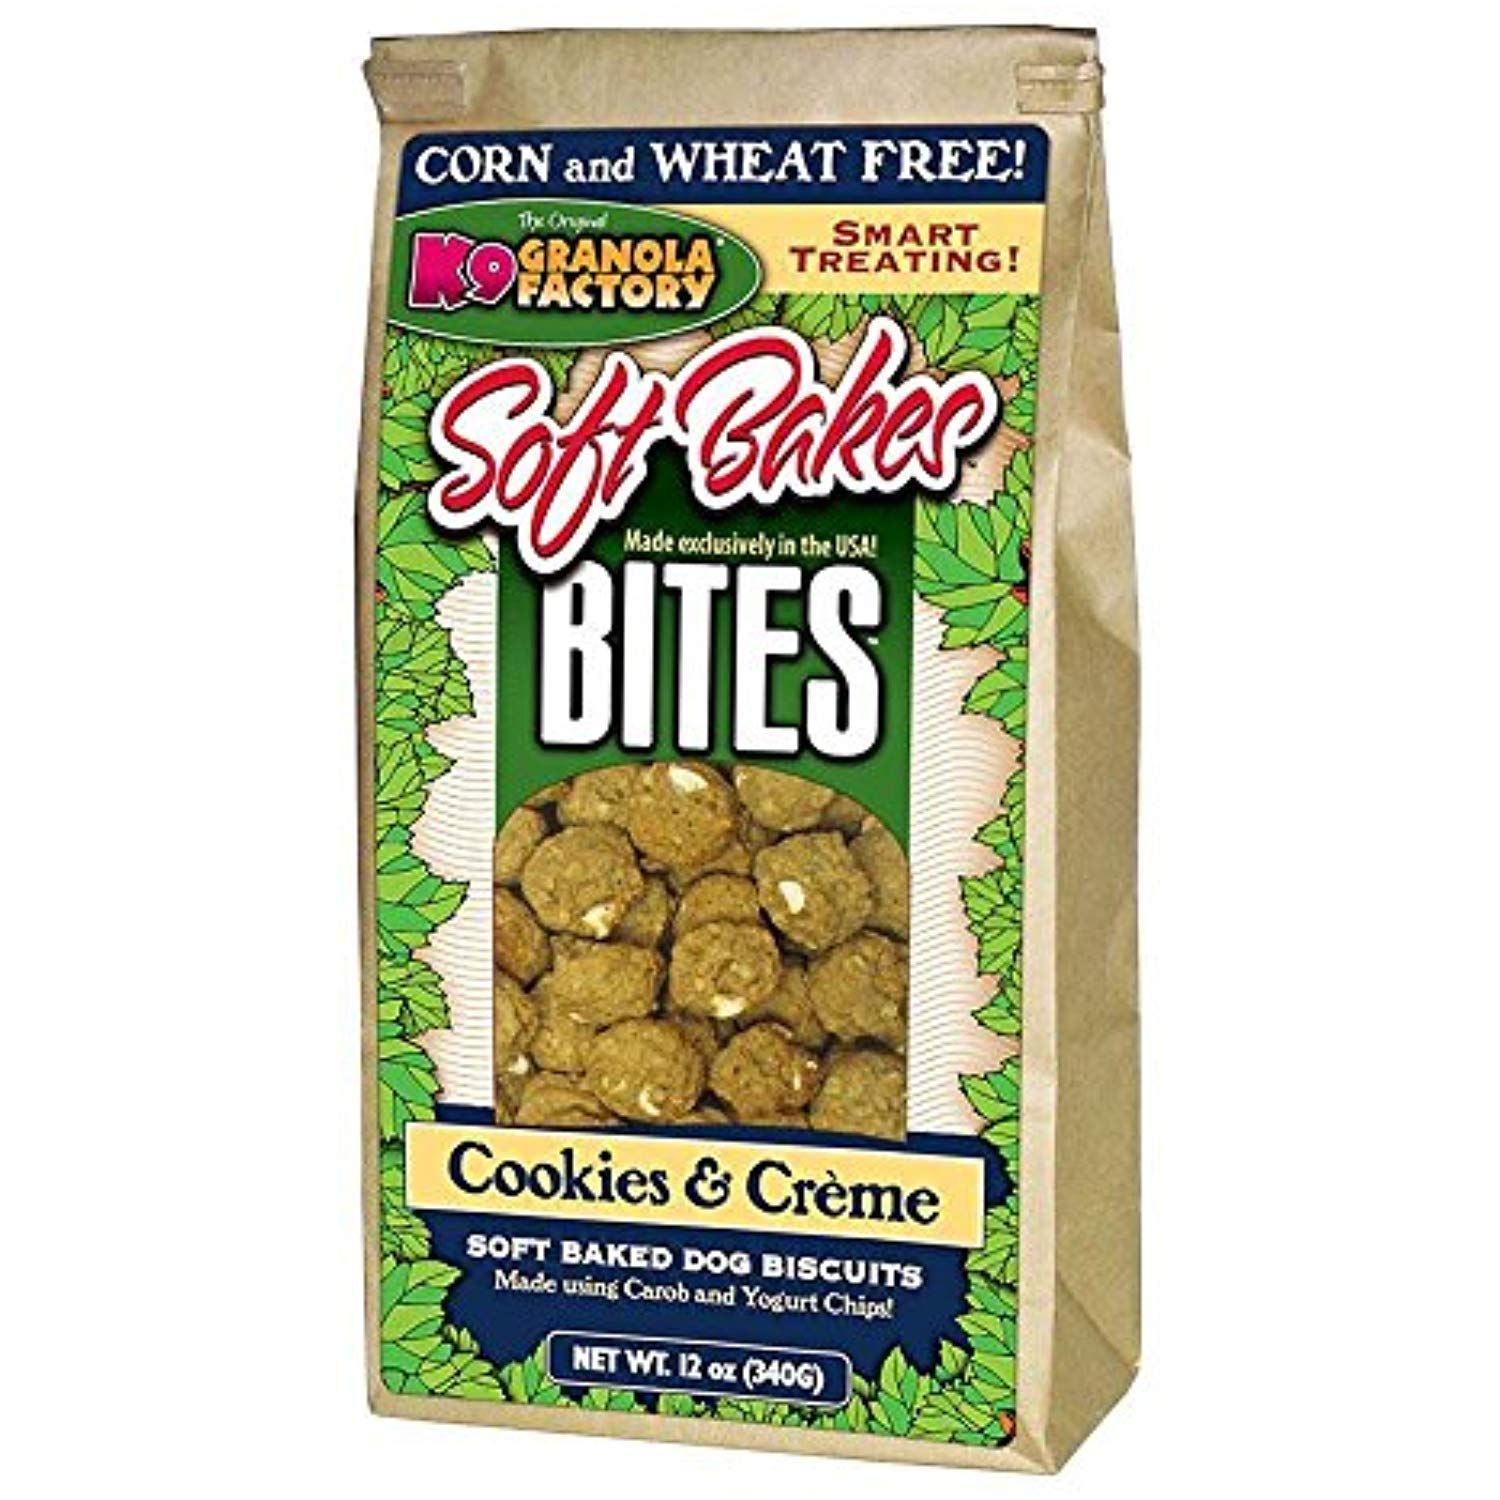 K9 Granola Factory Soft Bakes Cookies and Creme Formula 12